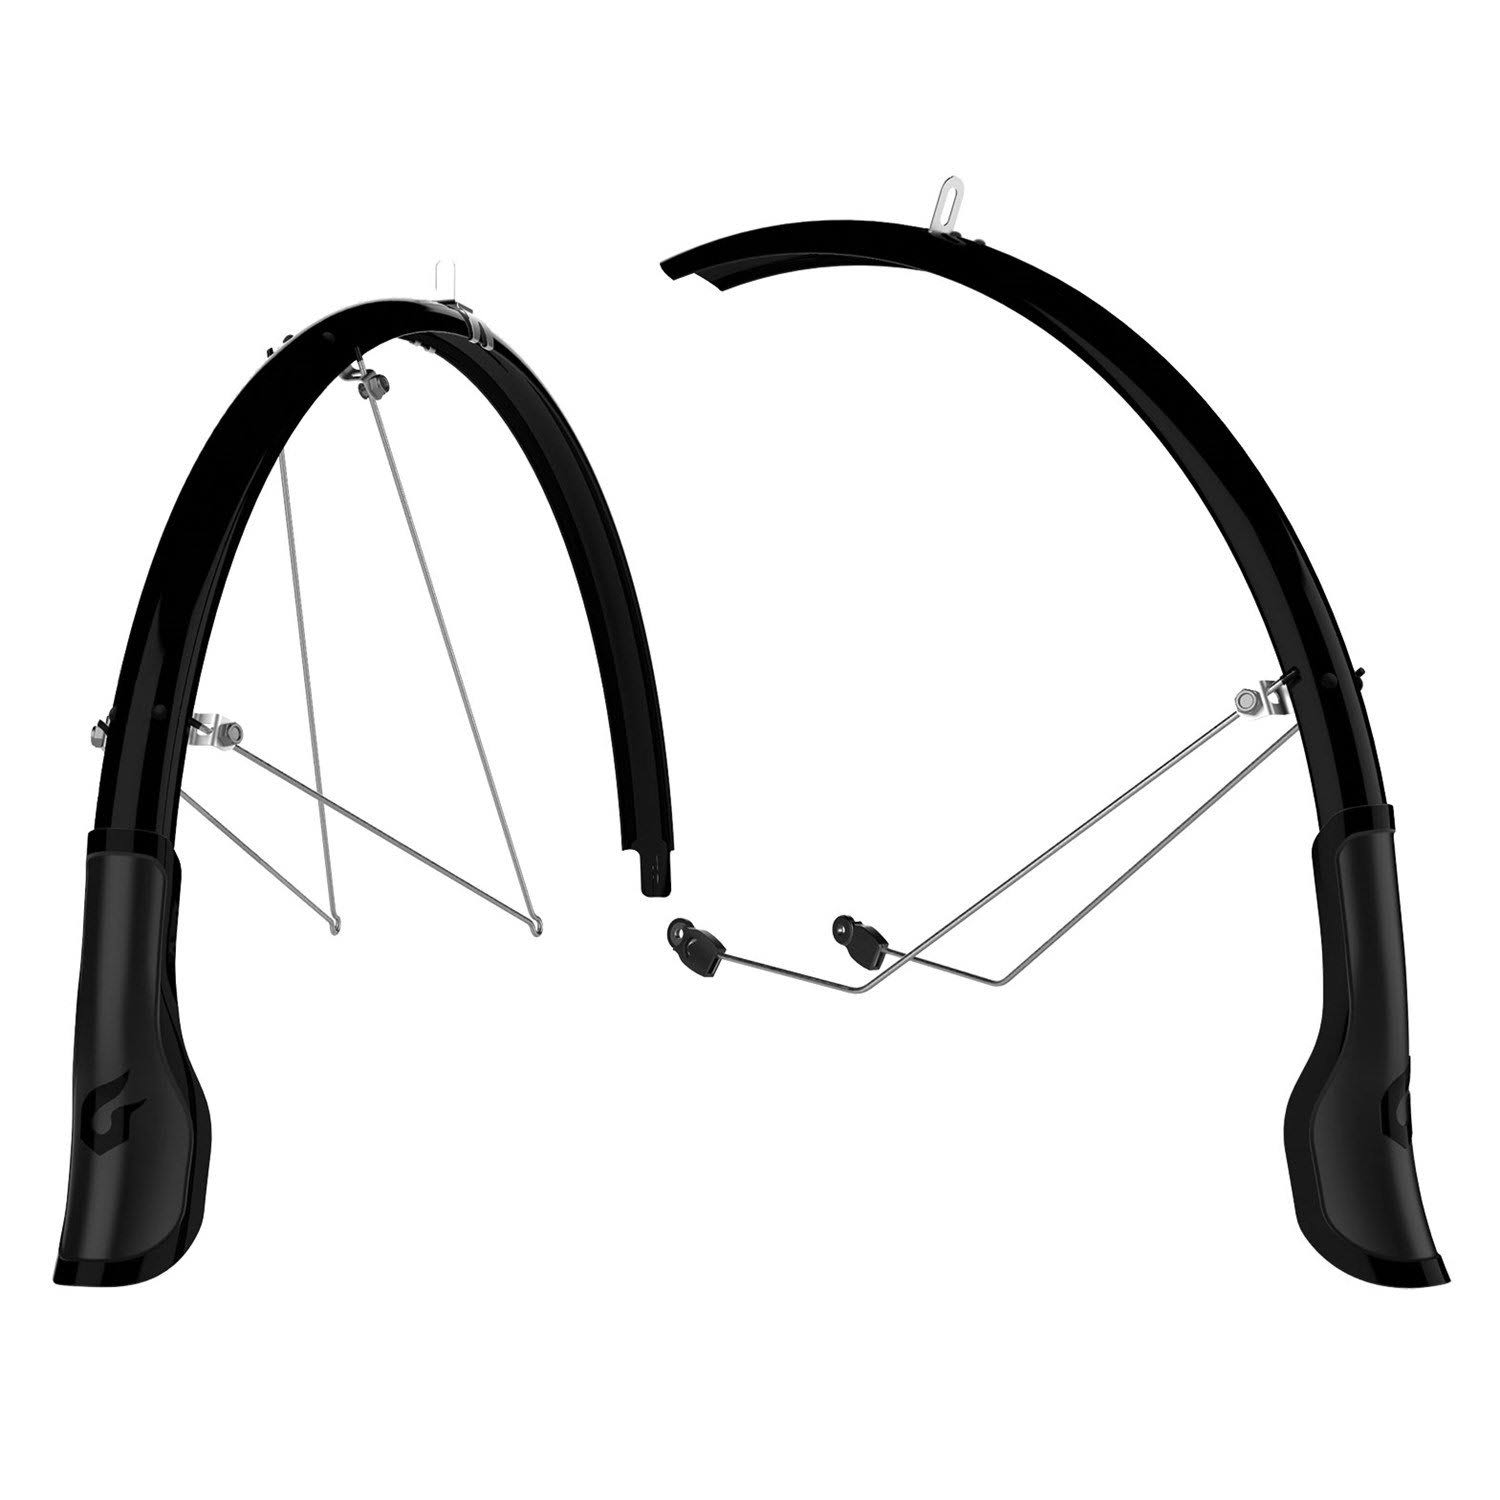 Blackburn Central Full Fender Set - Black, 700cm x 45mm